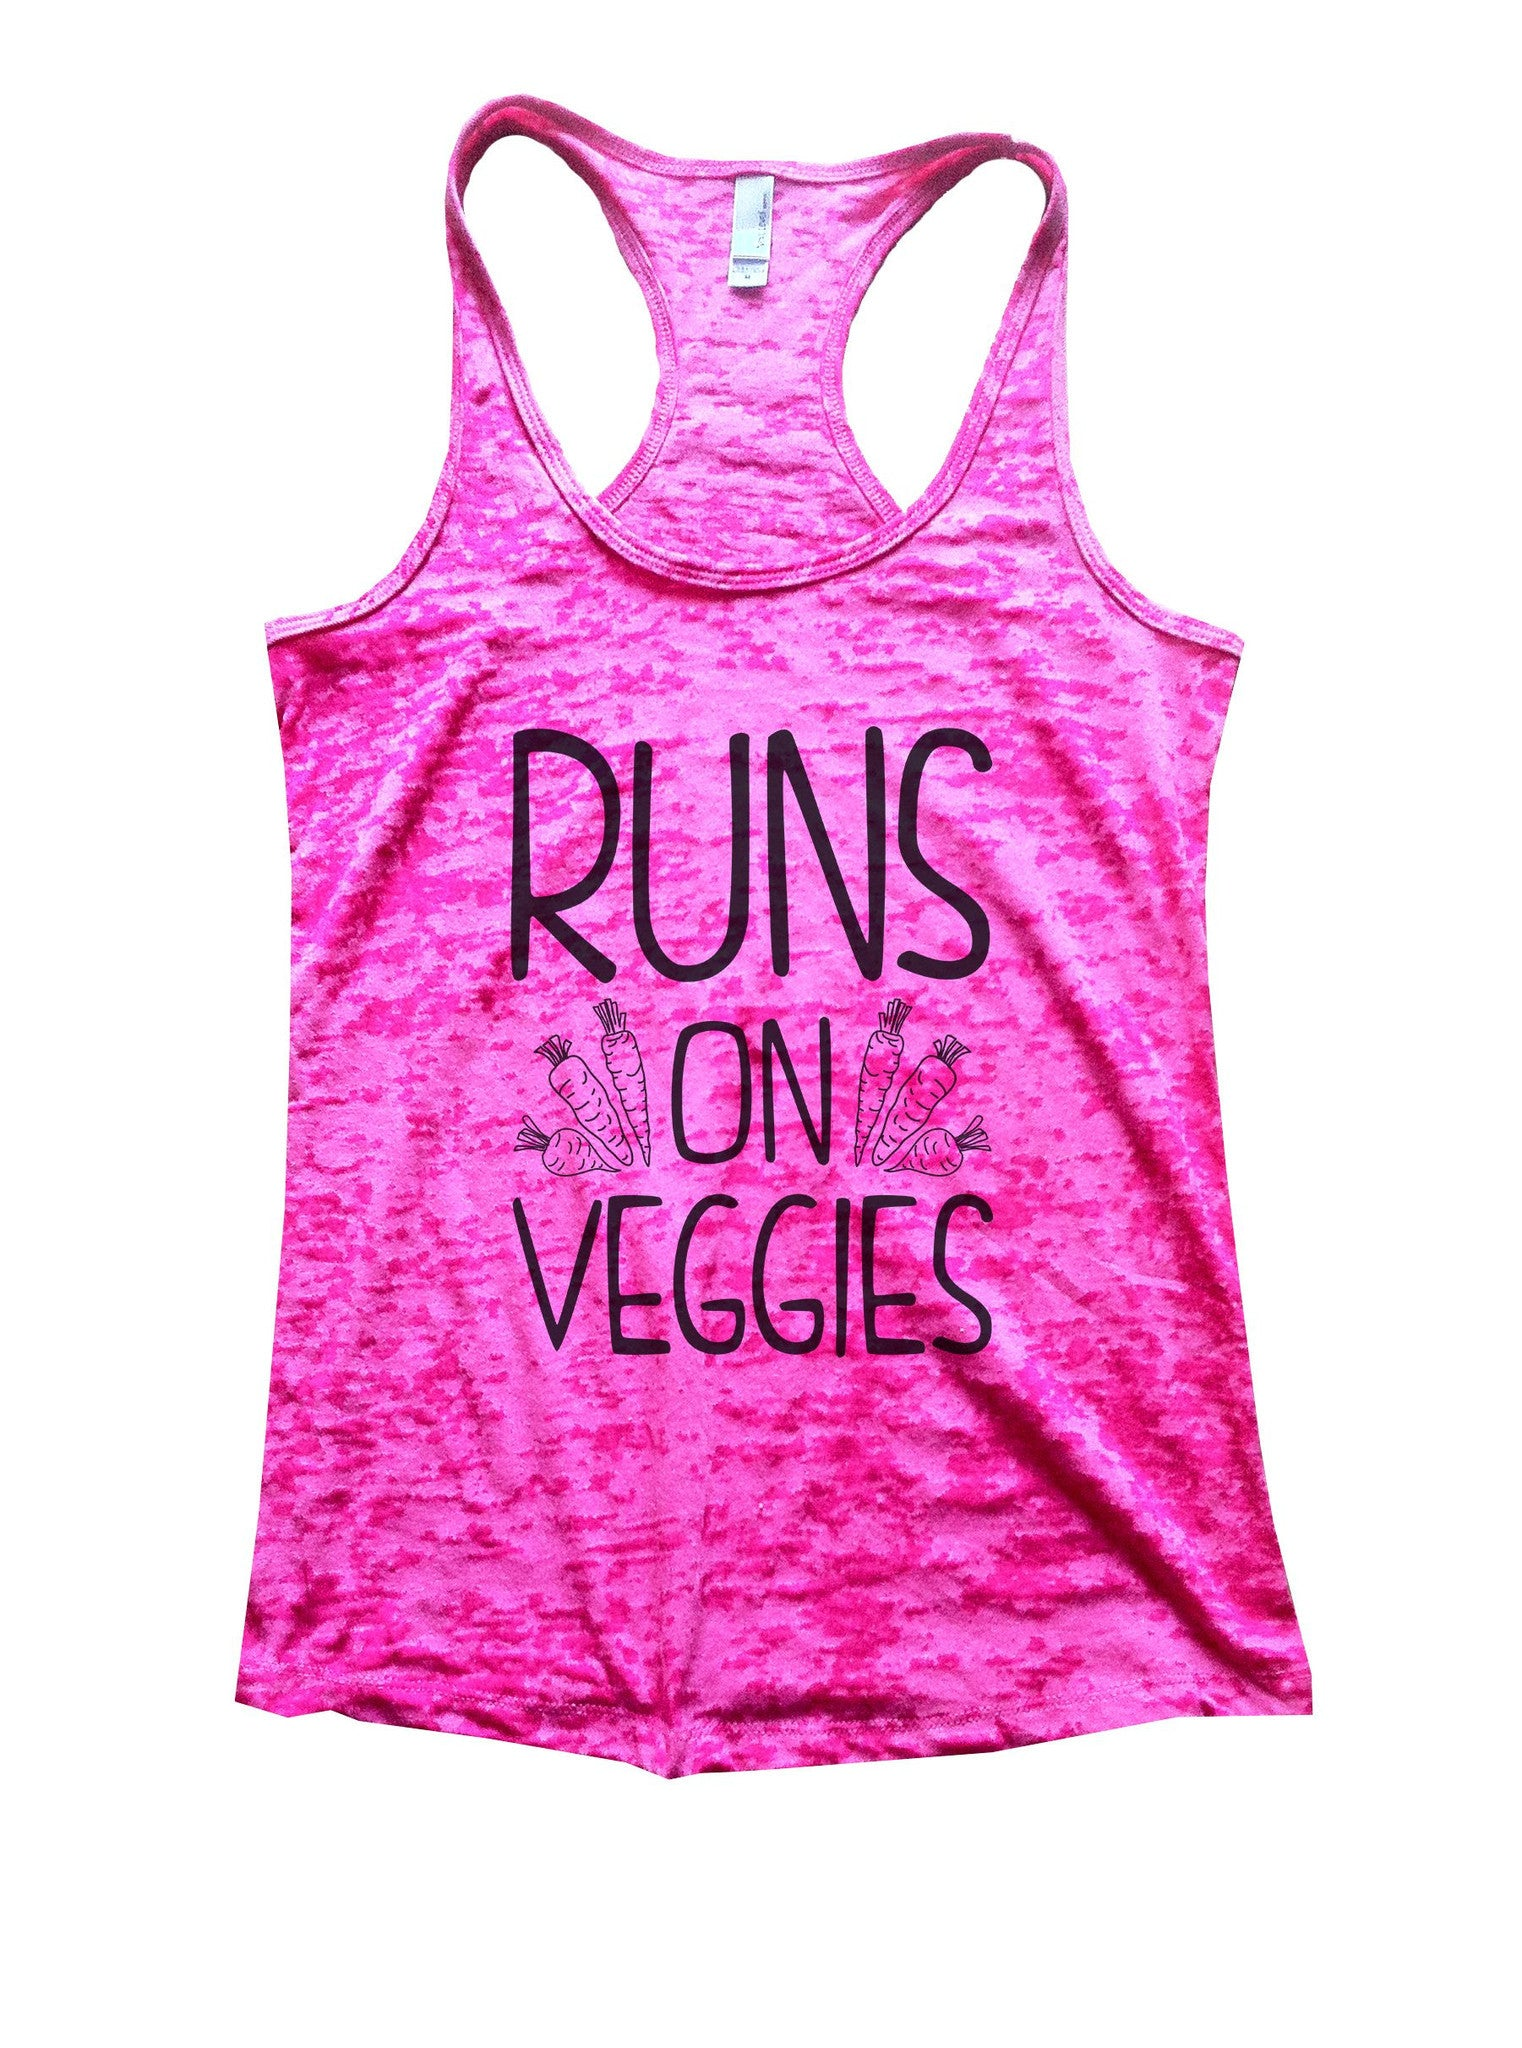 Runs On Veggies Burnout Tank Top By BurnoutTankTops.com - 1074 - Funny Shirts Tank Tops Burnouts and Triblends  - 5